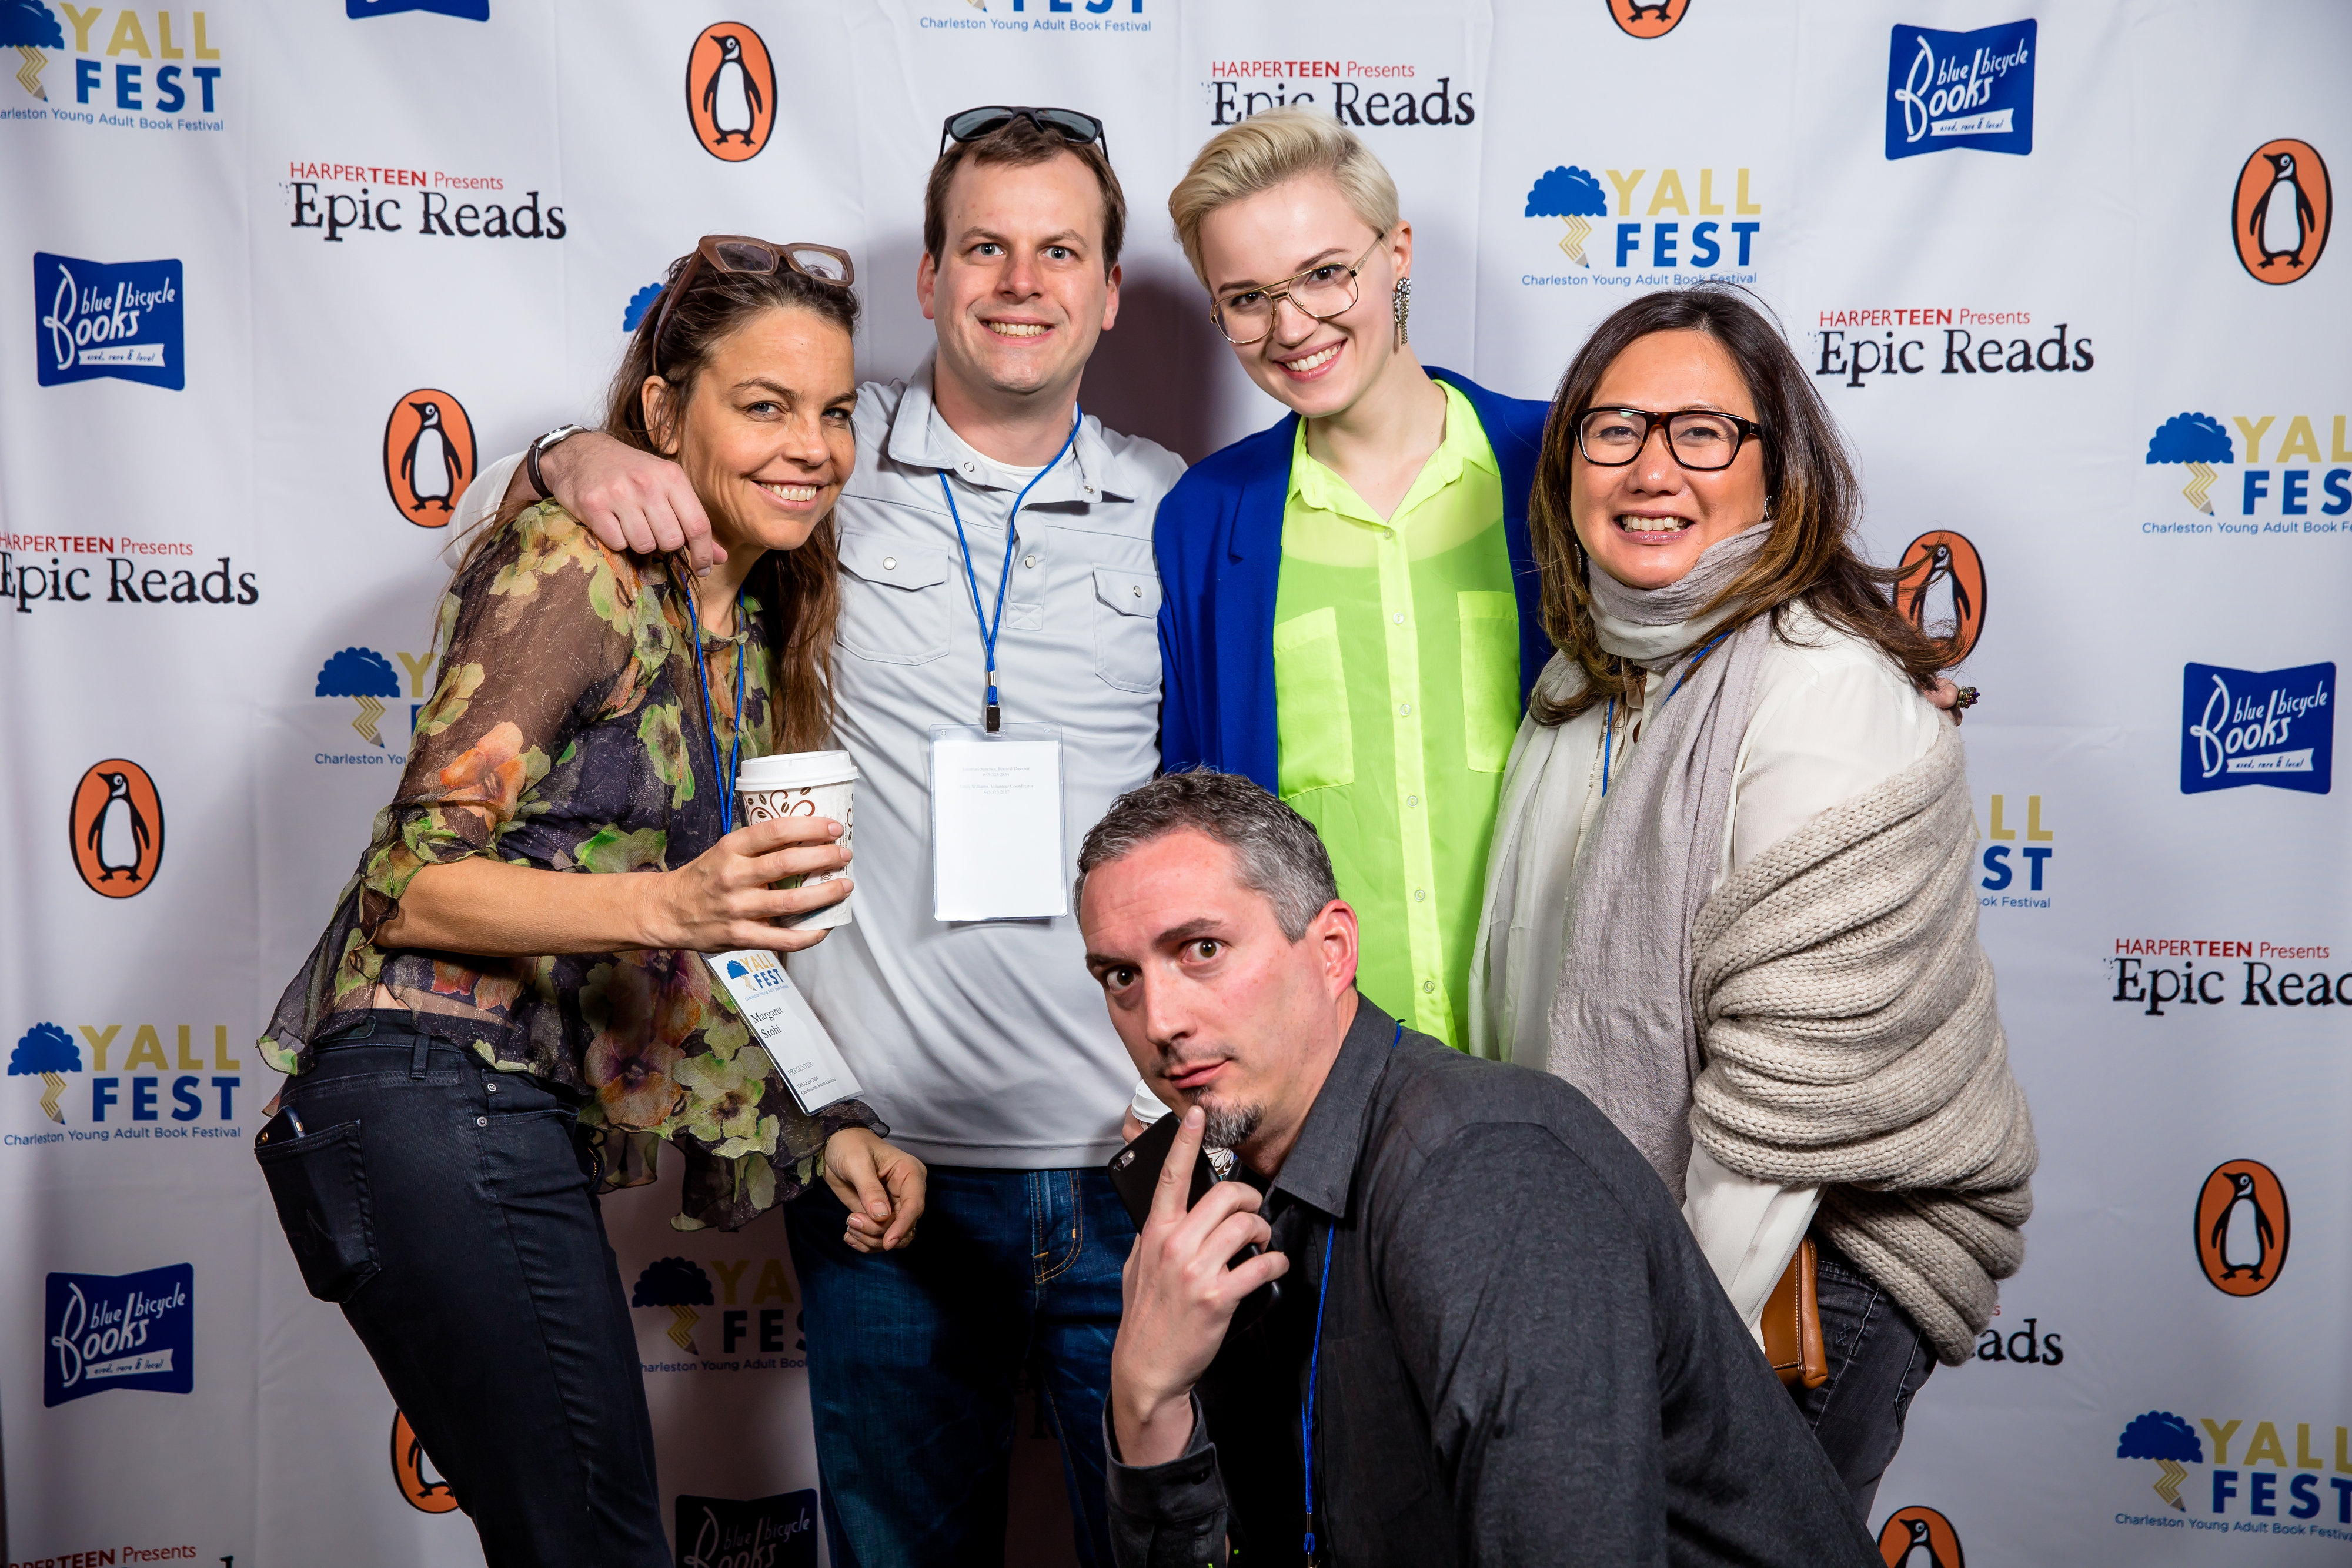 YALLFEST 2014 PHOTOS – Random Grab Bag!